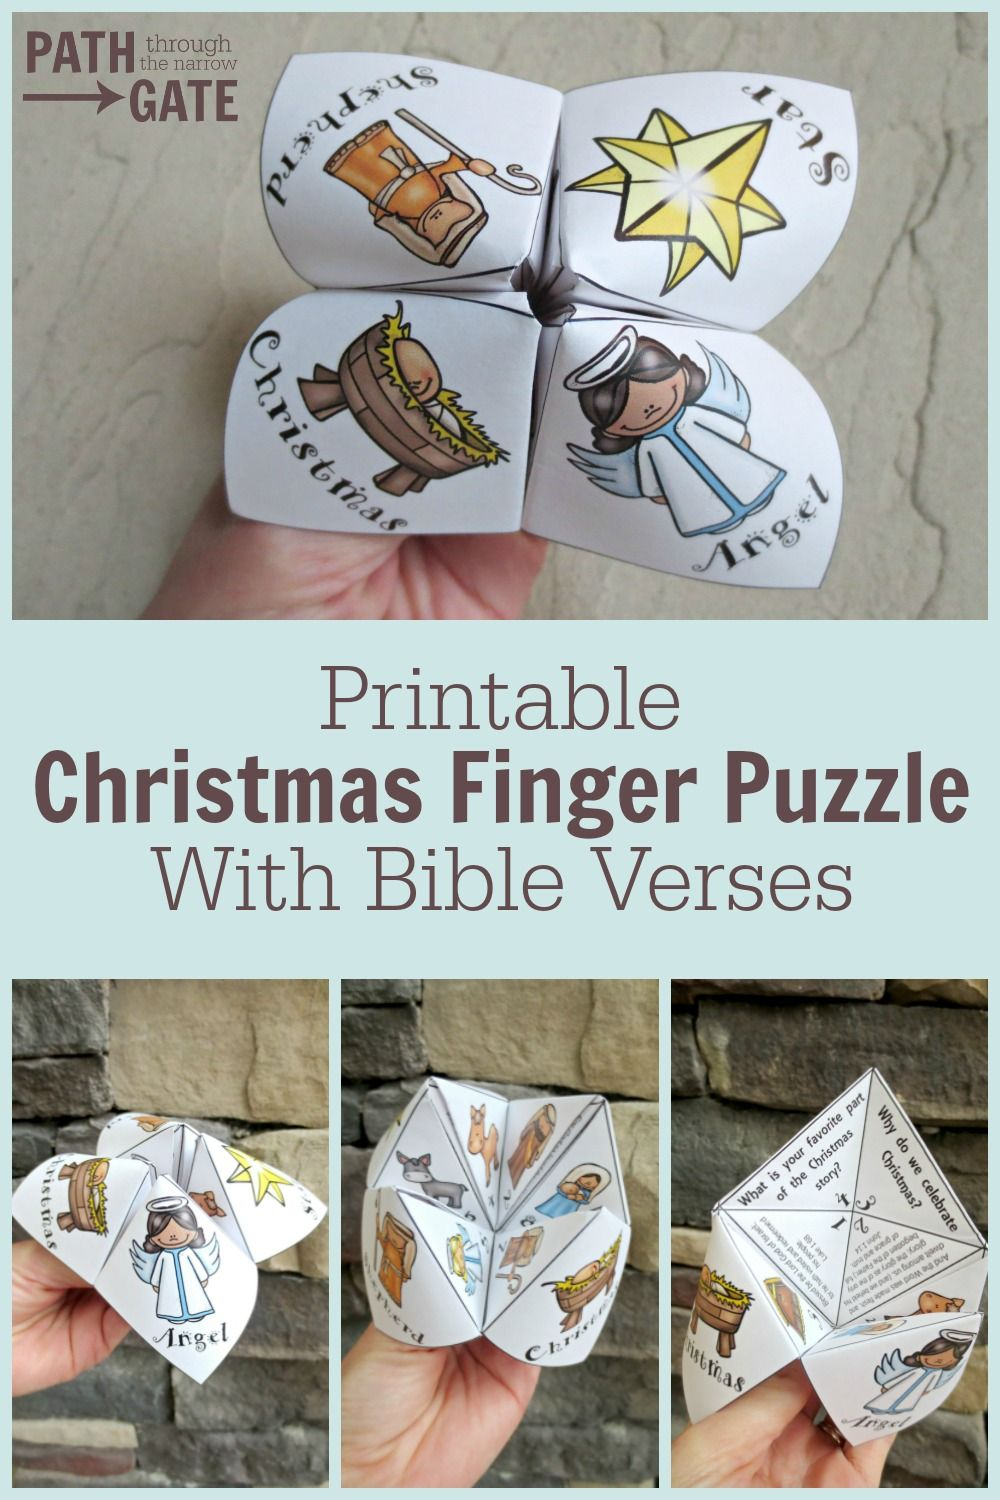 Adorable Printable Christmas Finger Puzzle With Bible Verses - These - Printable Finger Puzzle